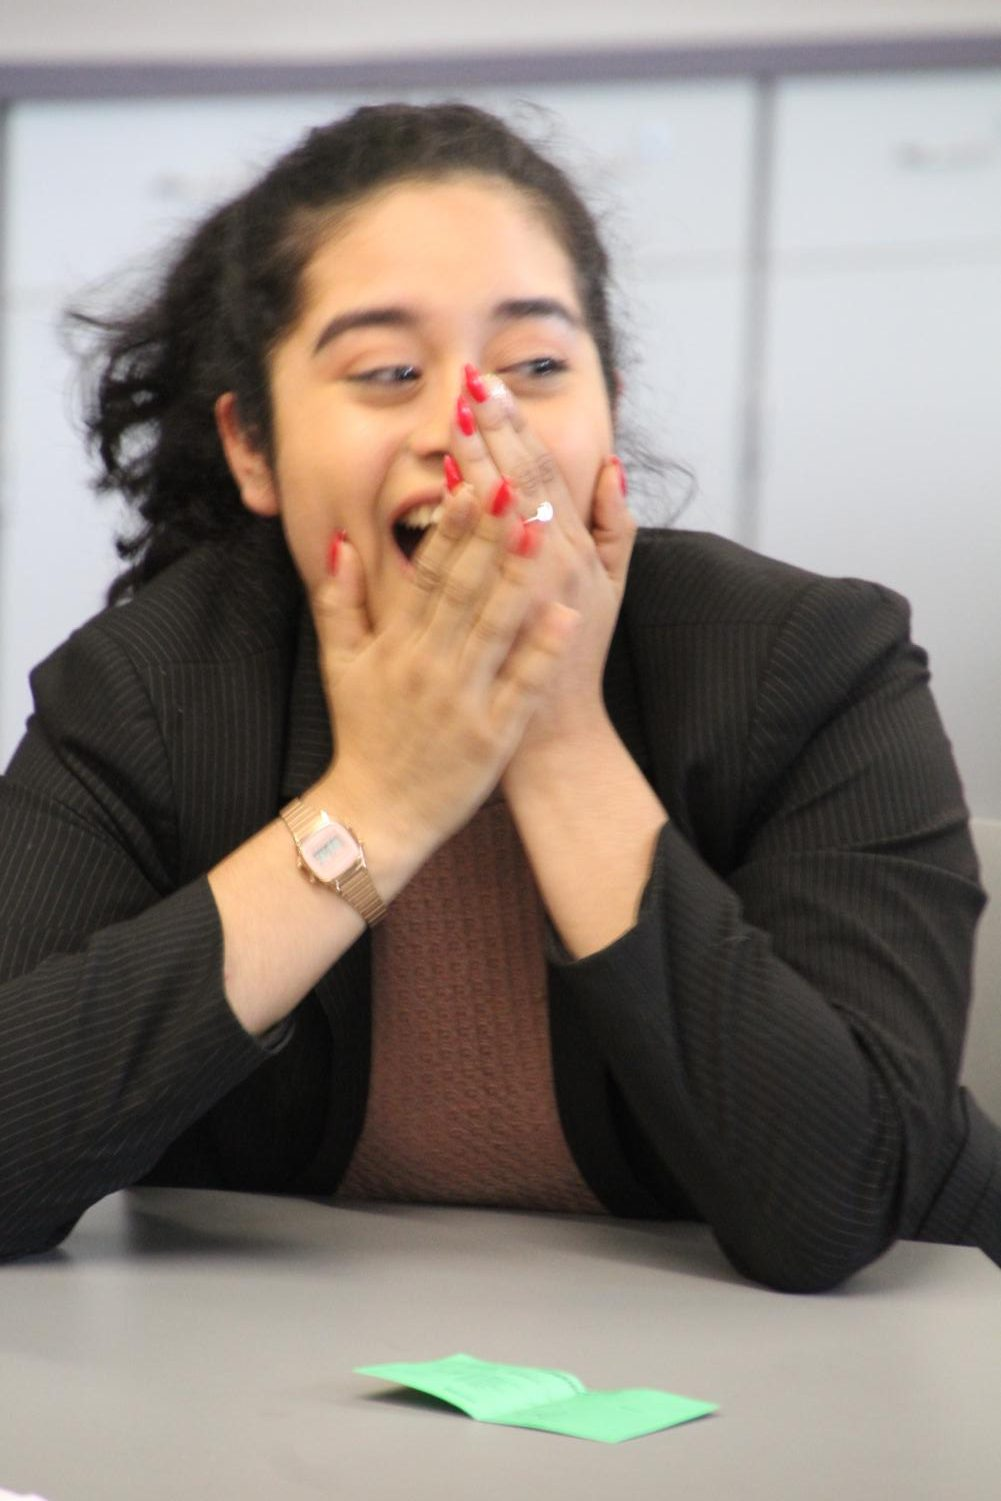 Senior Evelyn Sanchez reacts upon hearing her name announced as the 2018 International Student Journalist of the Year.